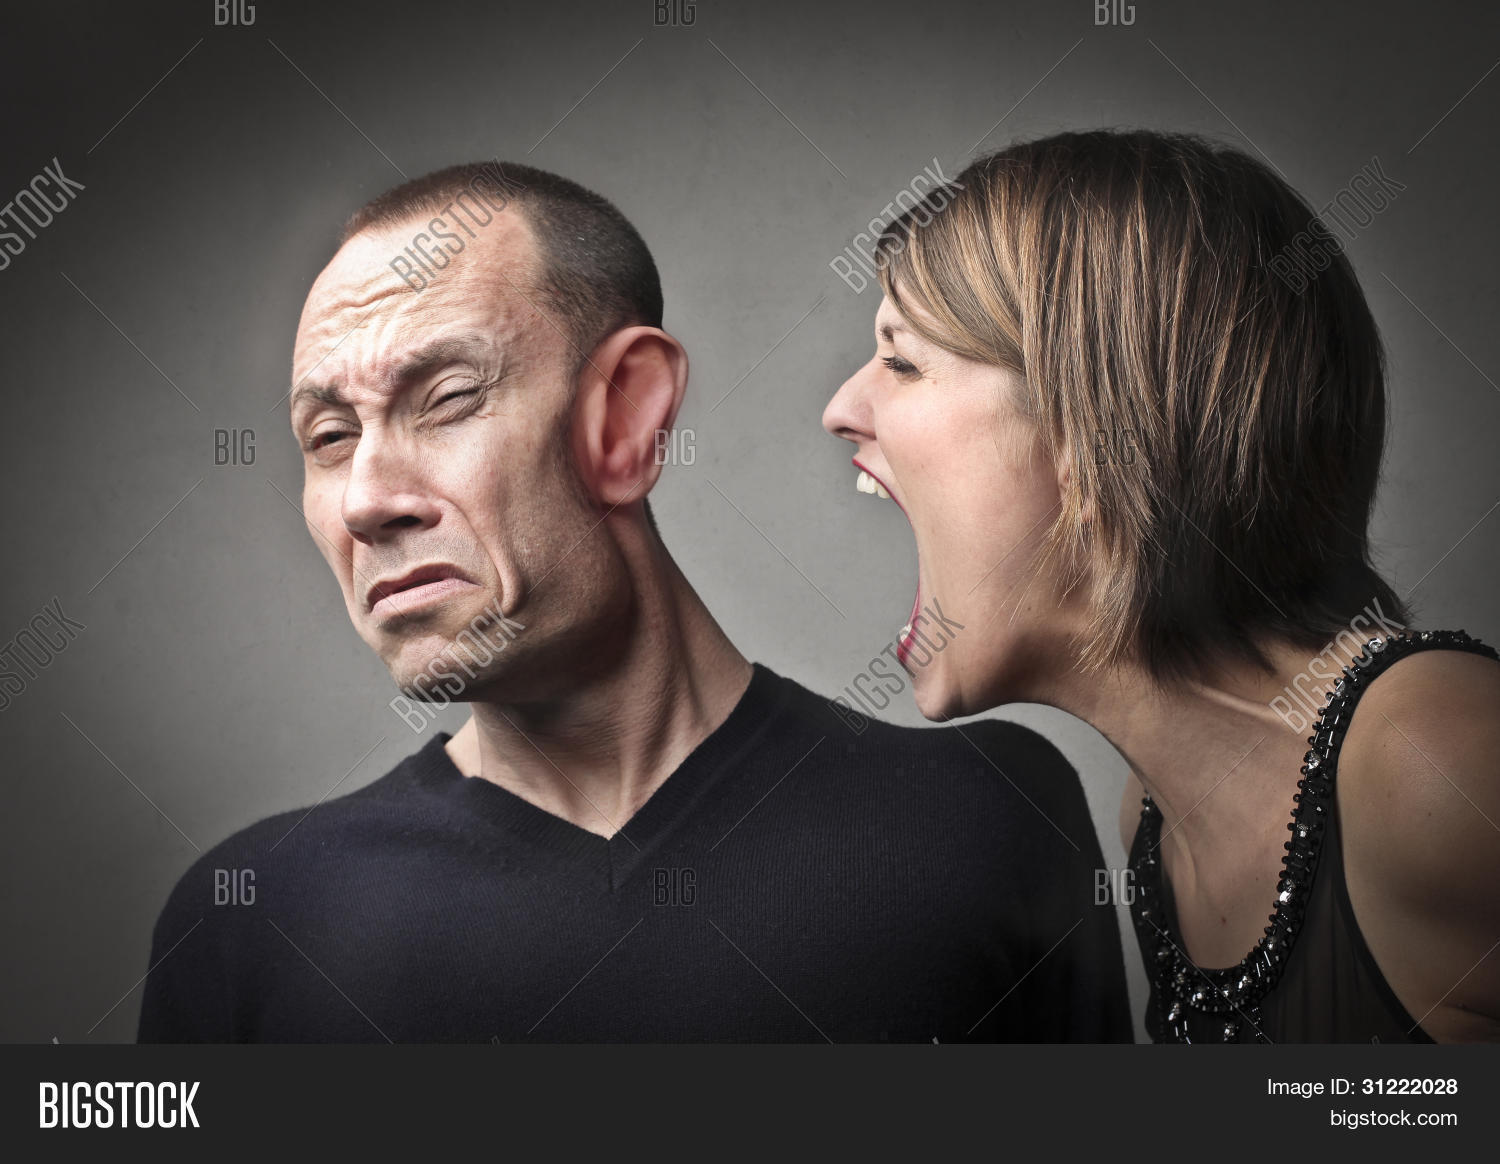 Angry Woman Screaming Against Her Image & Photo | Bigstock